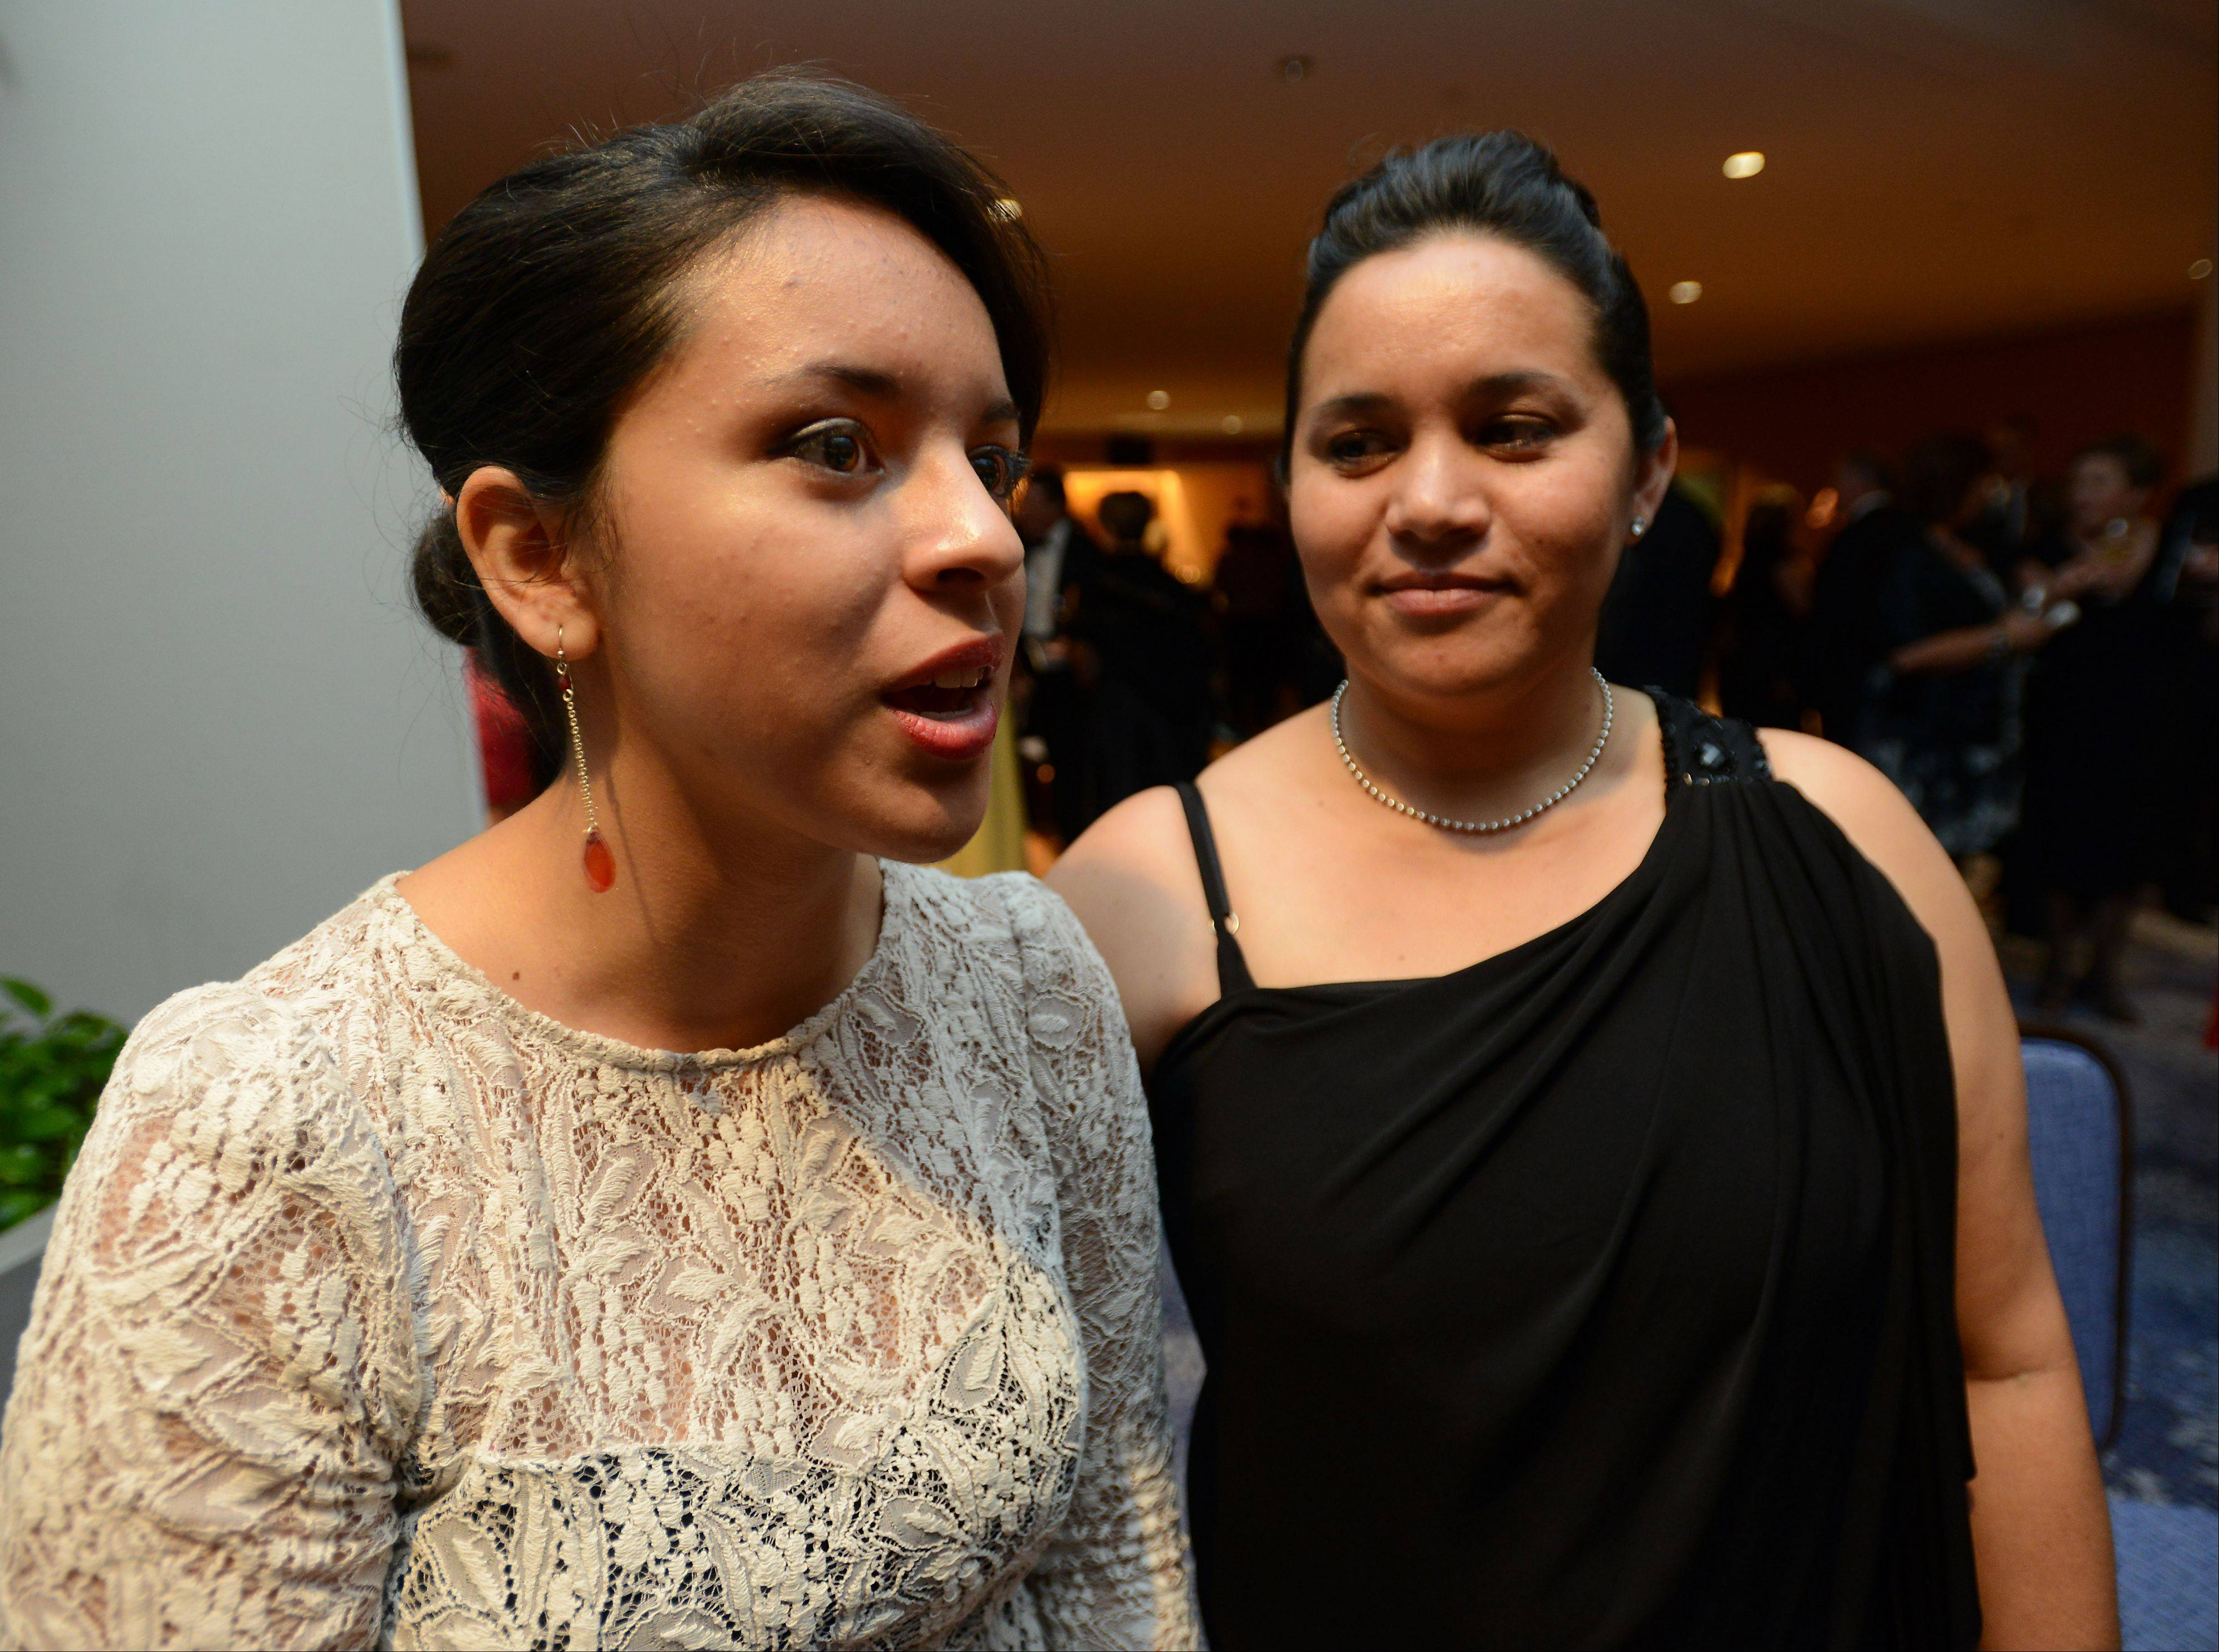 Mark Welsh/mwelsh@dailyherald.com Elisa Galvan, with her mother, Maricela Alva, discusses the speech she is about to give at The President's Ball gala fundraiser.